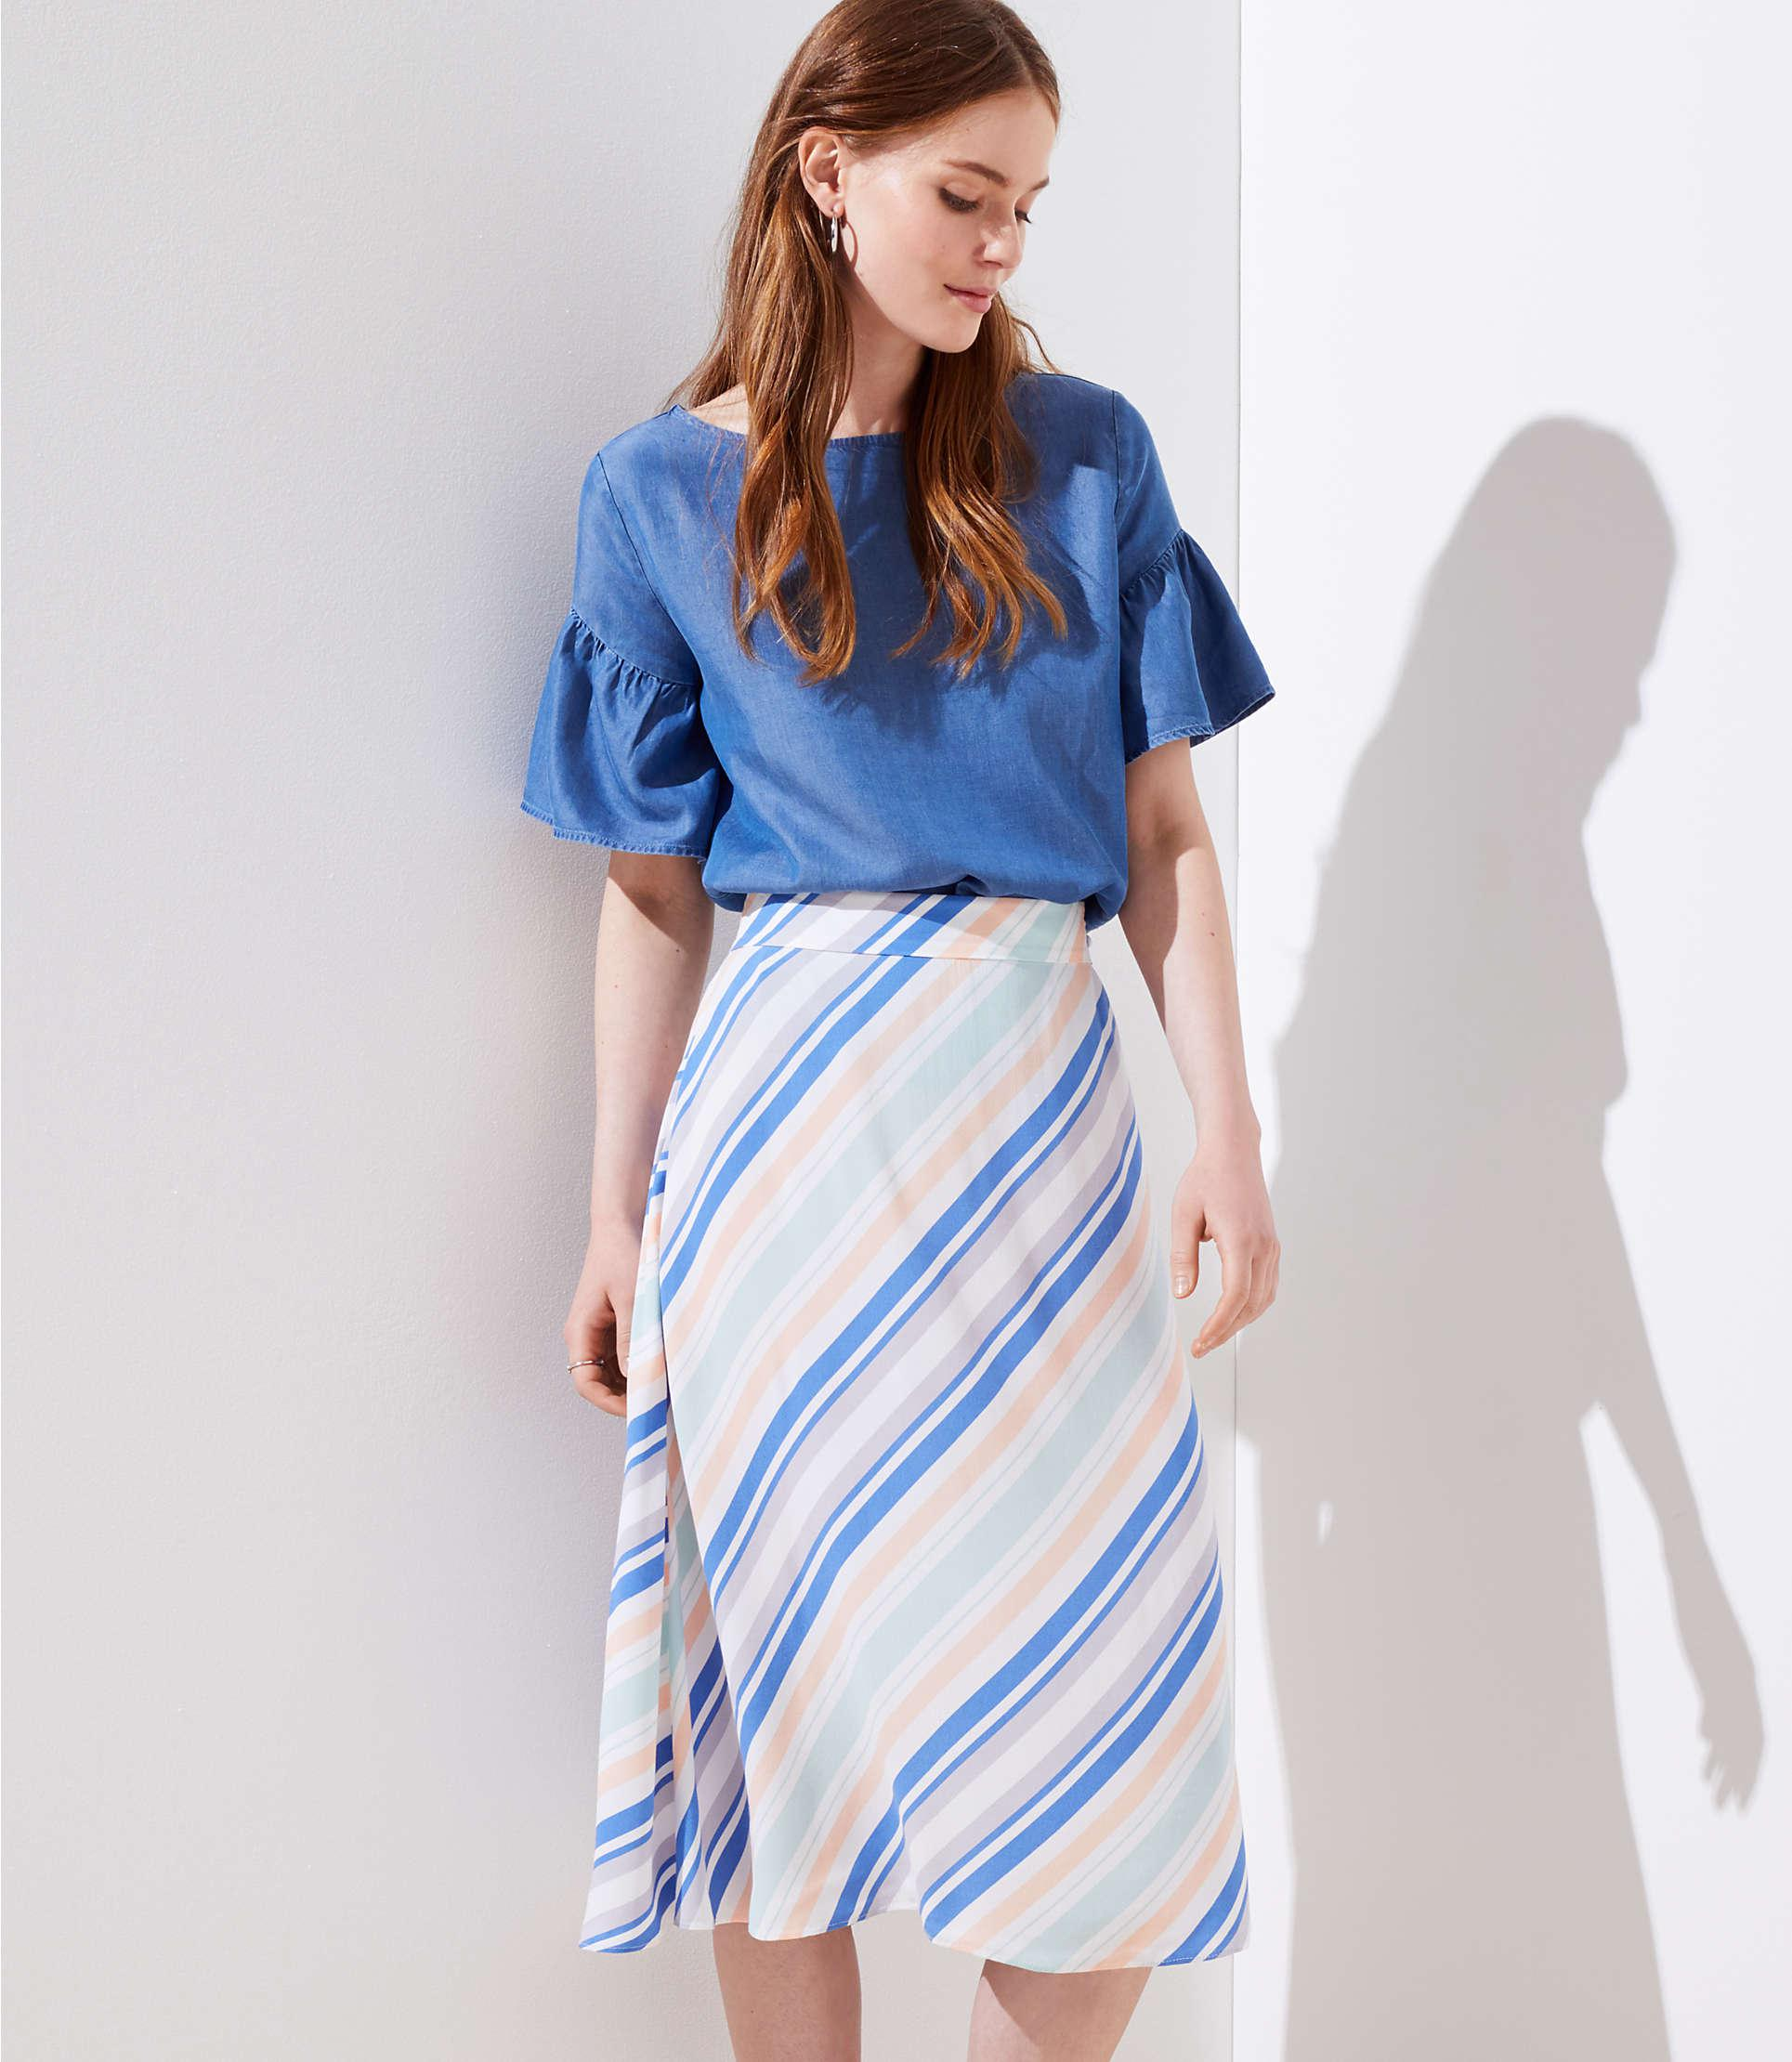 a99430ab3ef250 Gallery. Previously sold at: LOFT · Women's Button Down Skirts